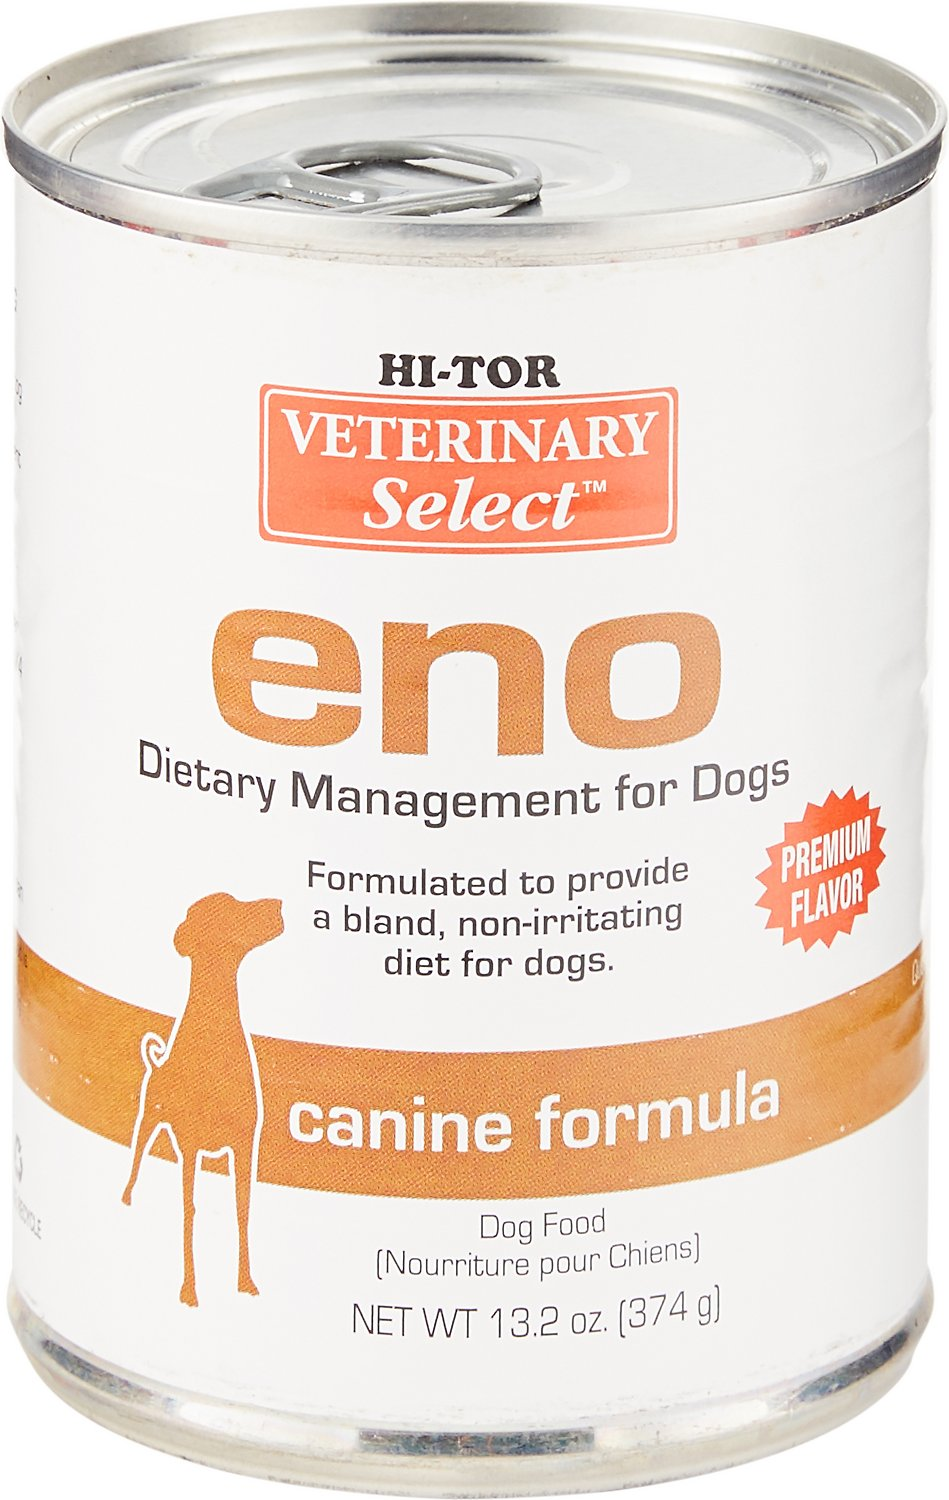 HI-TOR Veterinary Select Eno Diet Canned Dog Food, 13.2-oz